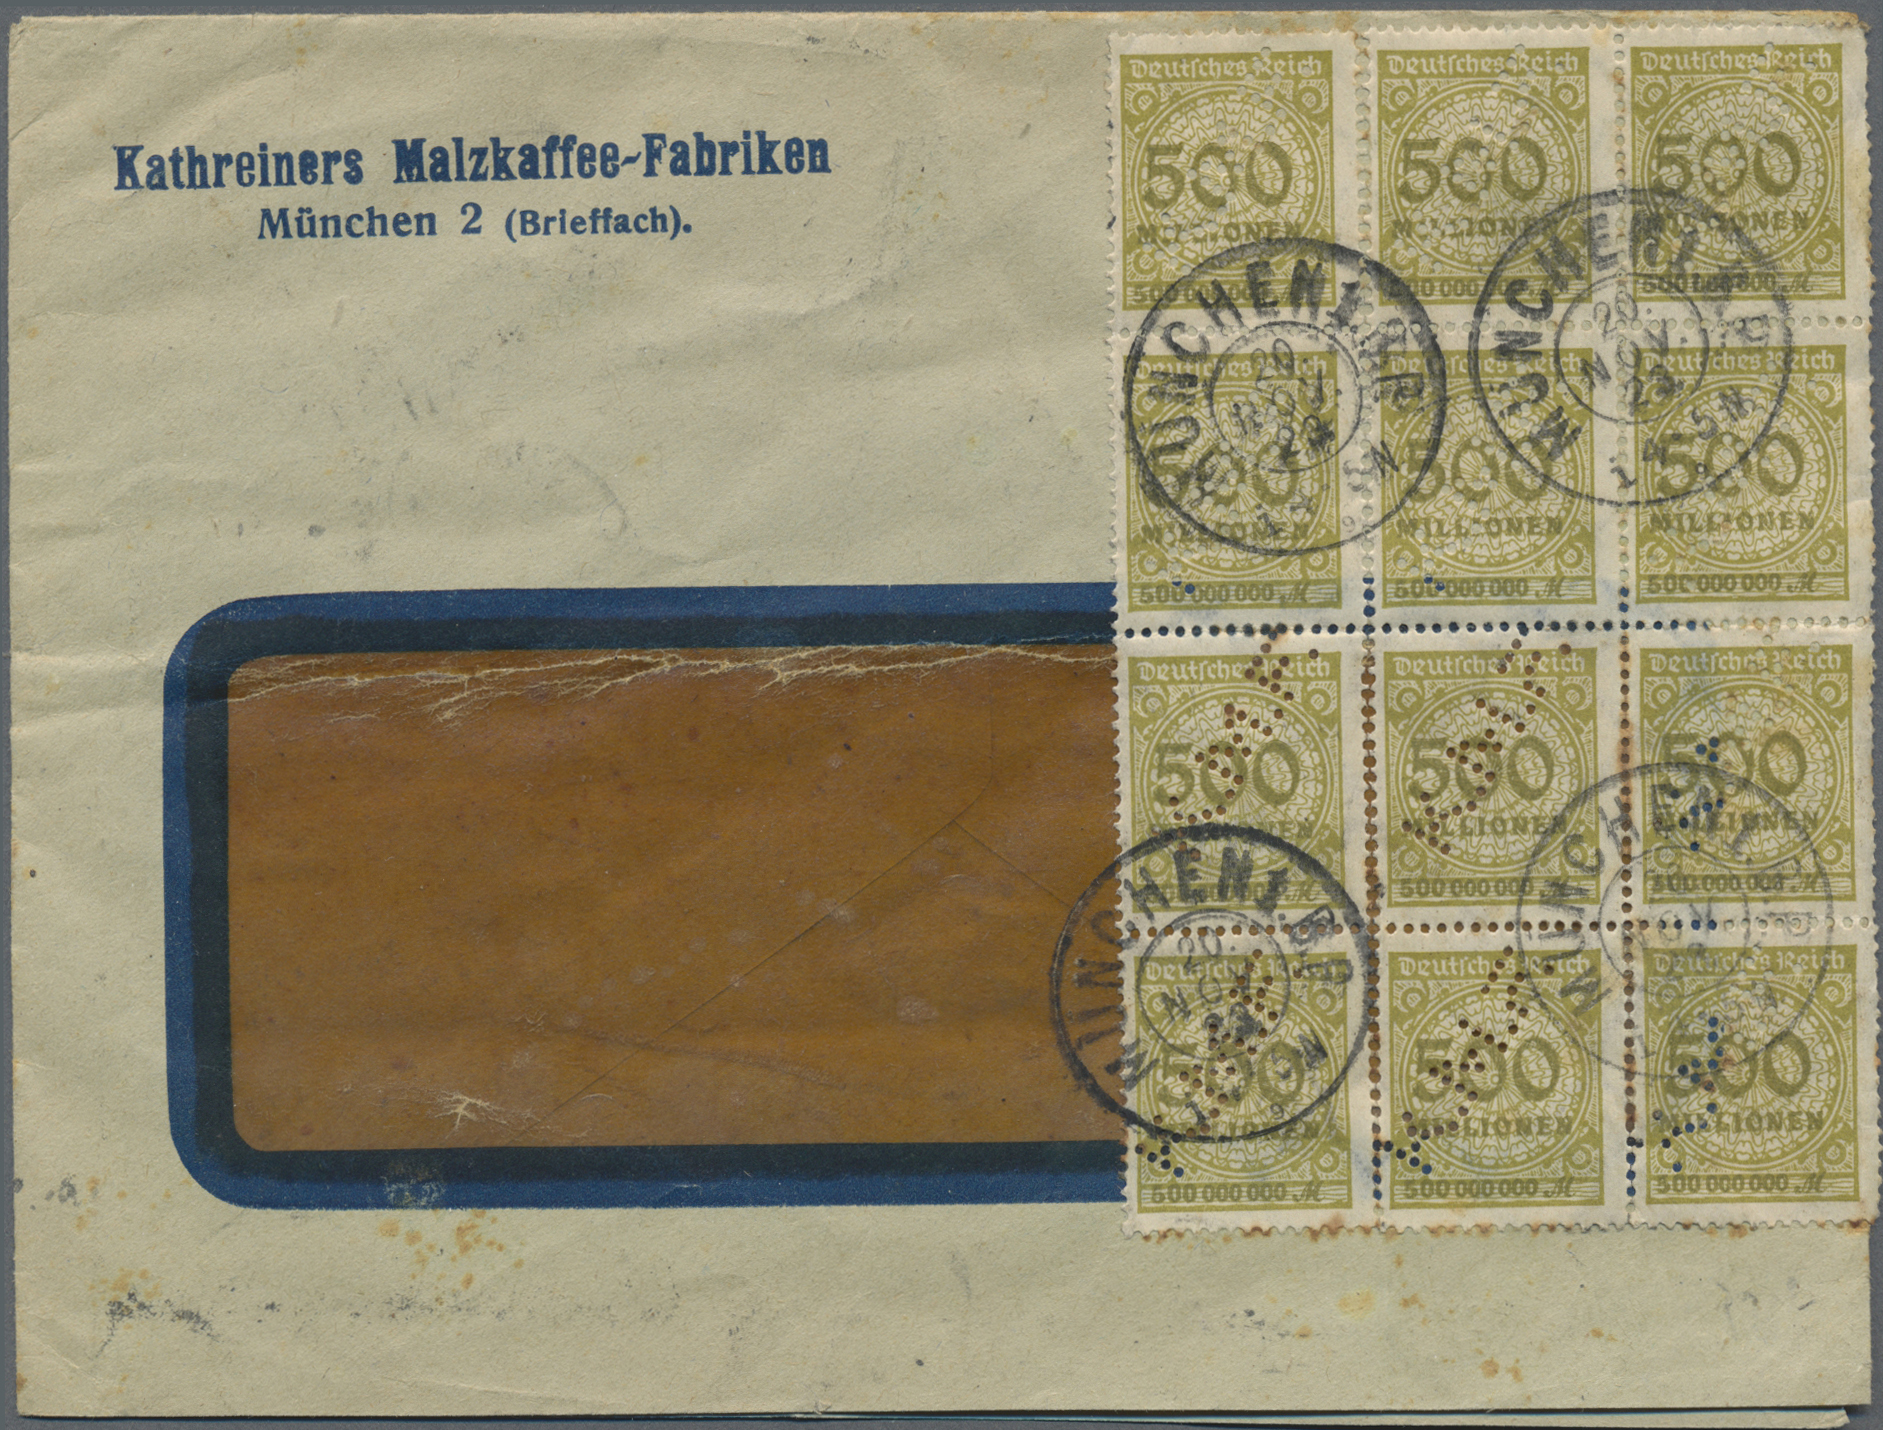 Lot 34845 - Thematik: Nahrung-Kaffee / food-coffee  -  Auktionshaus Christoph Gärtner GmbH & Co. KG Sale #44 Collections Germany